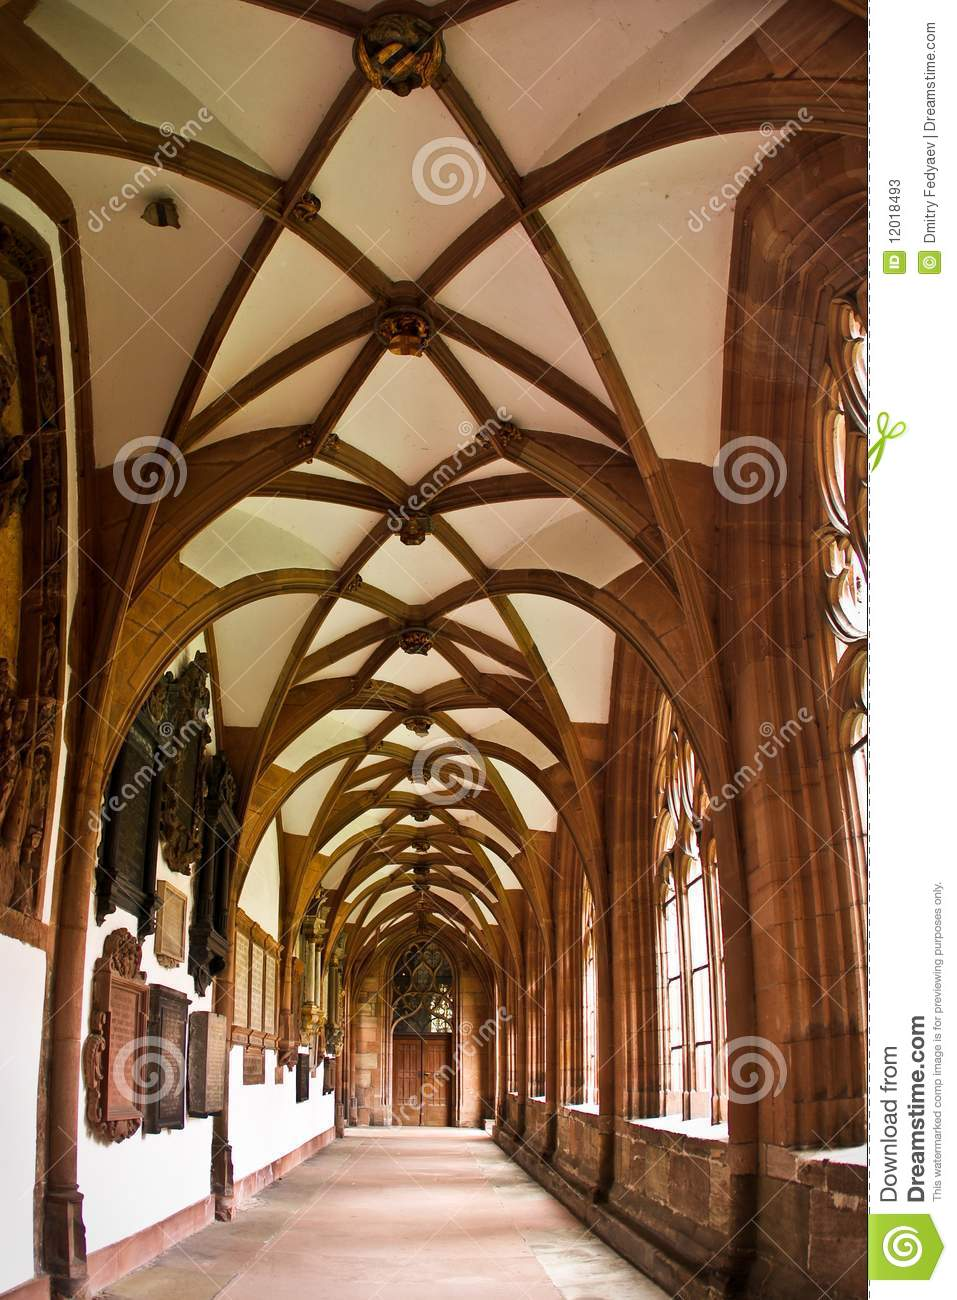 basel munster cathedral interior stock photos image 12018493. Black Bedroom Furniture Sets. Home Design Ideas